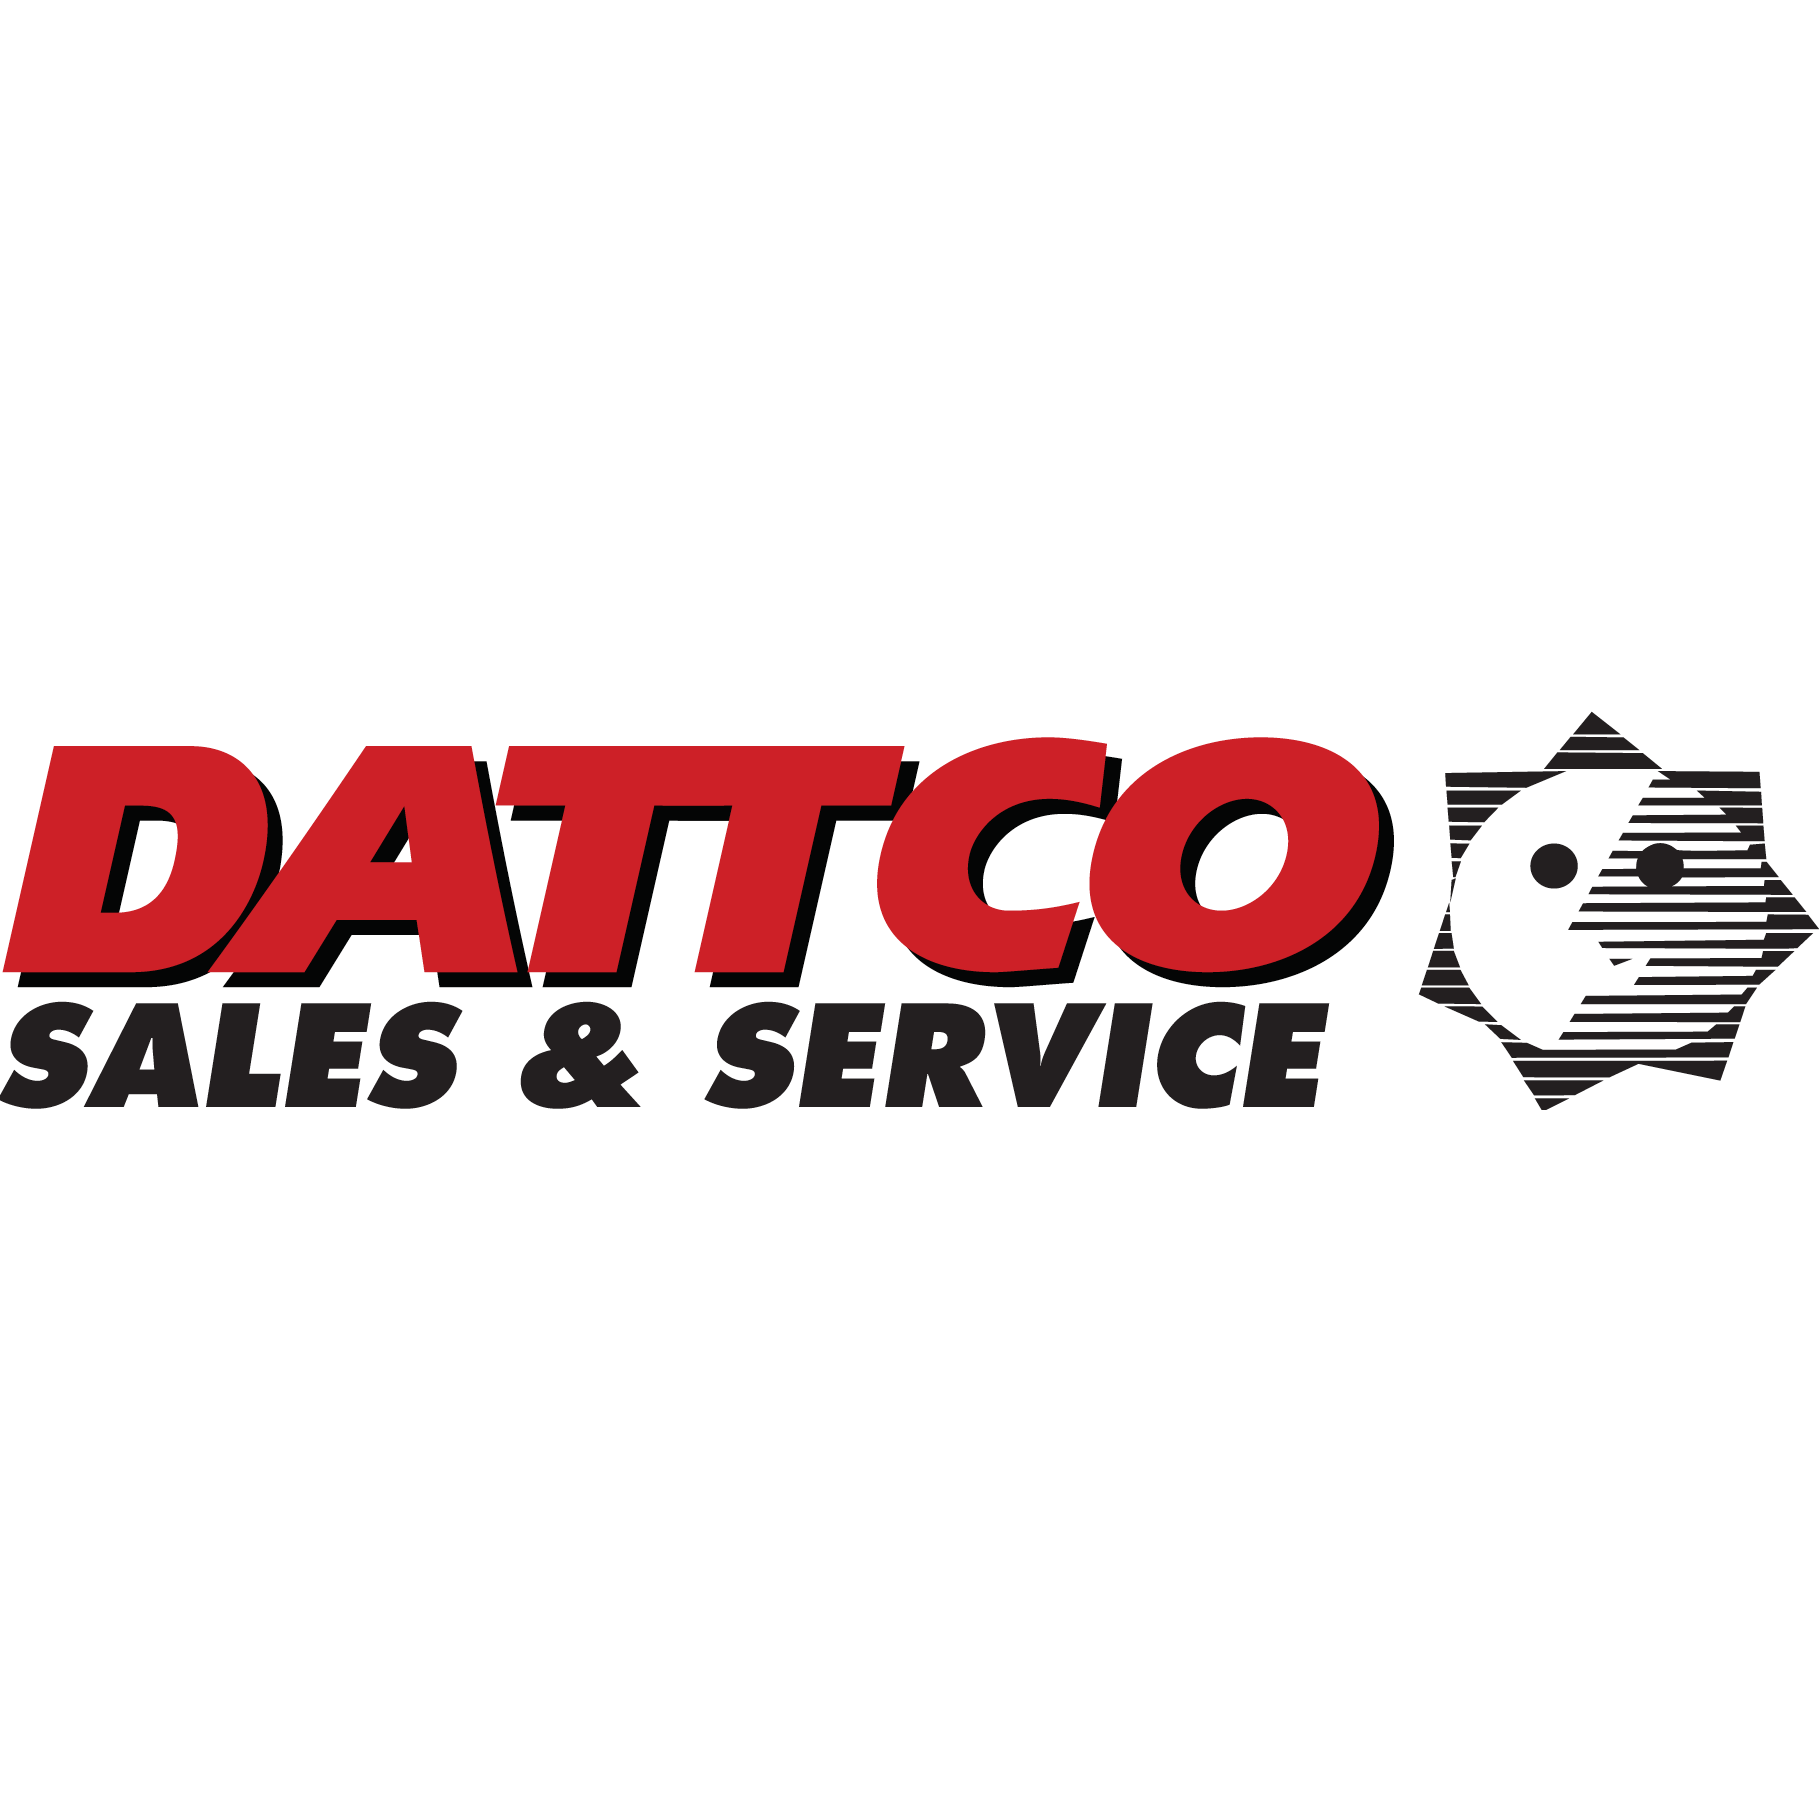 DATTCO Sales & Service